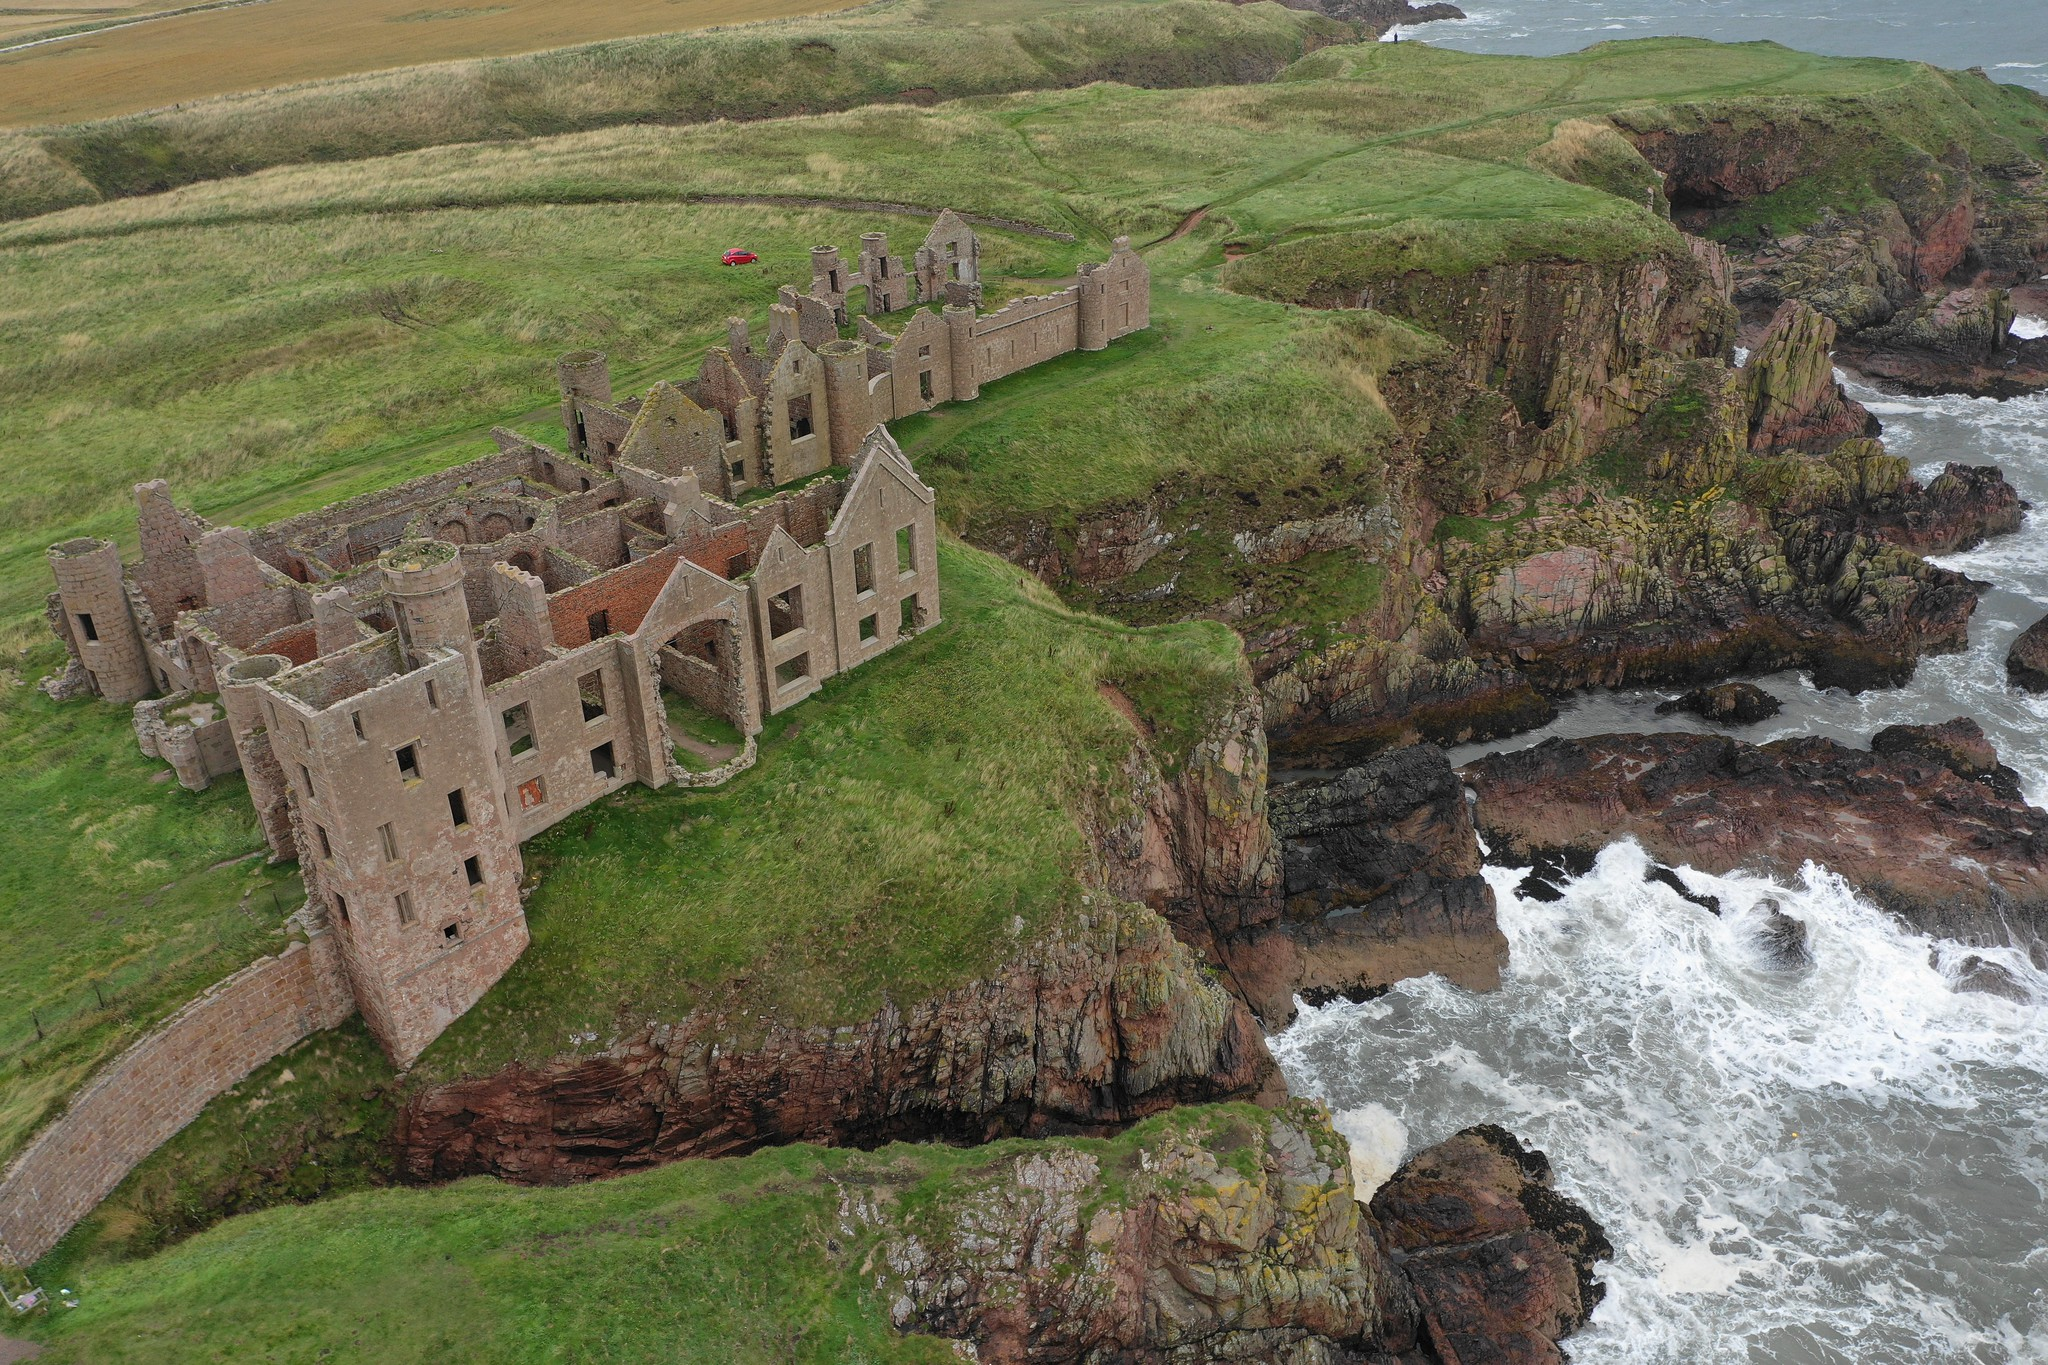 aerial view of slains castle and its rugged cliffs